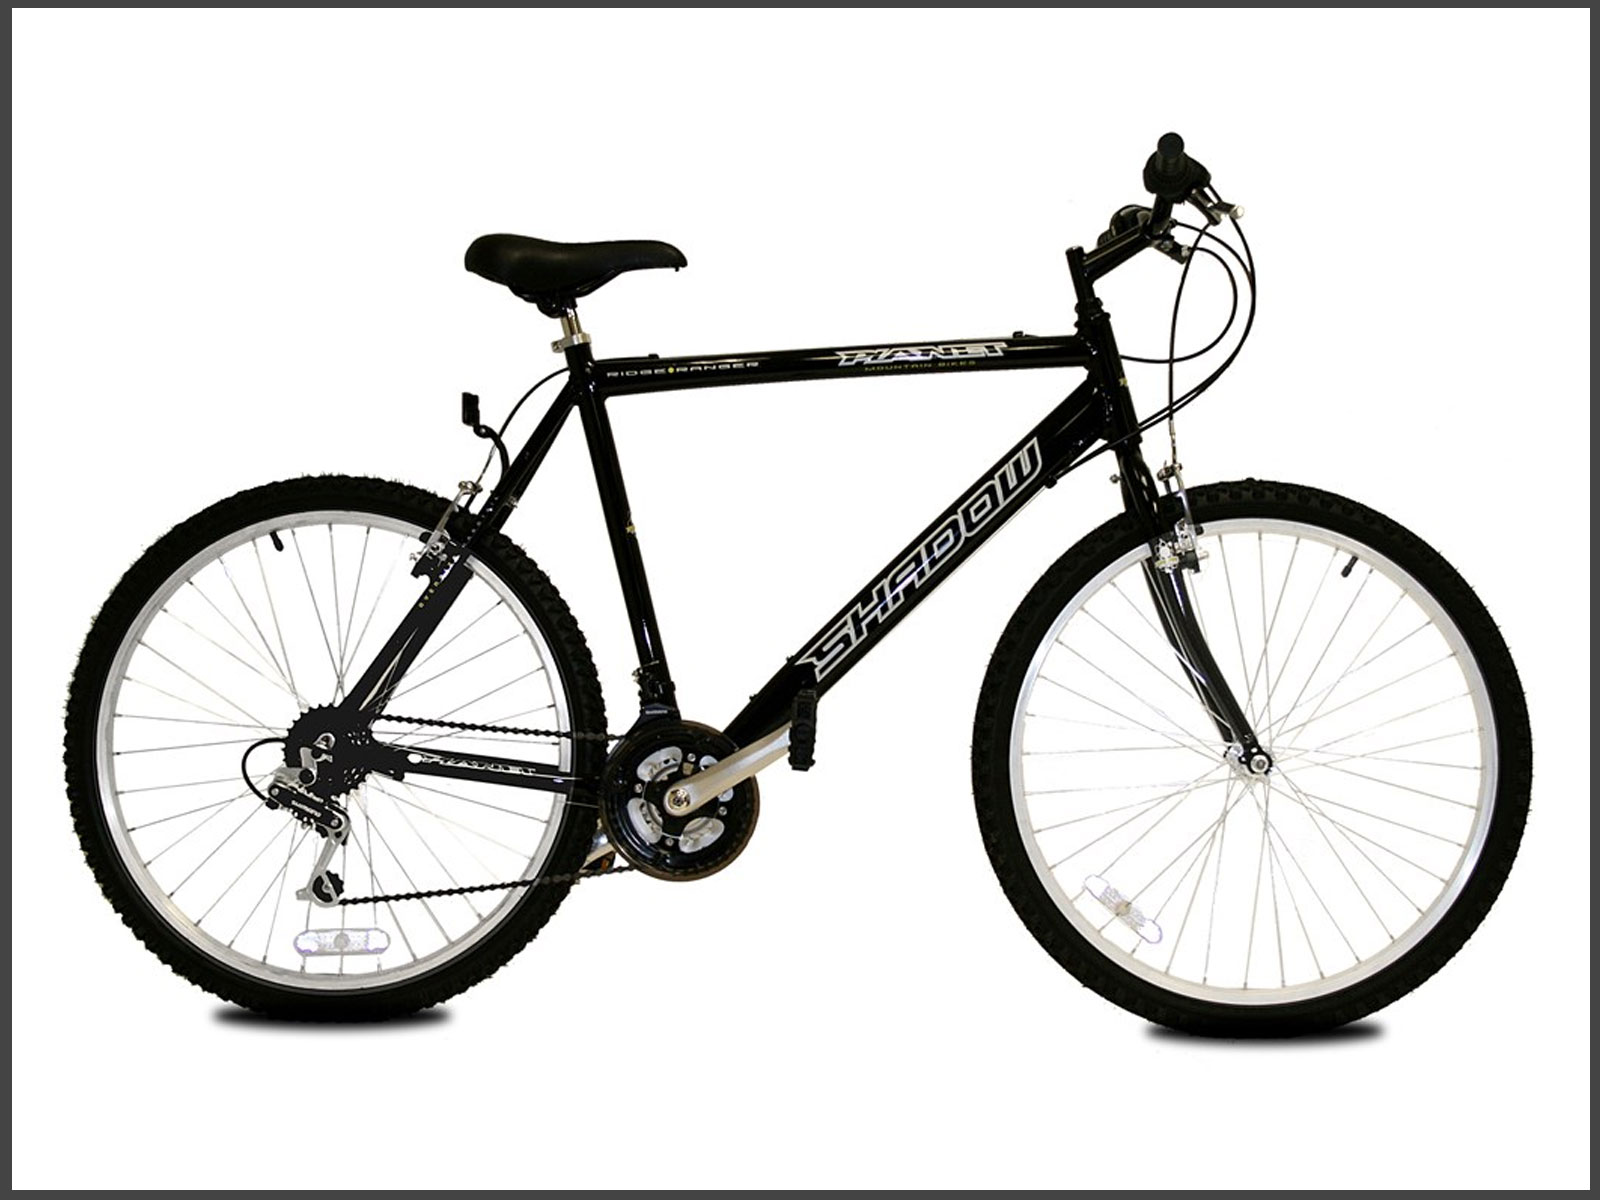 1600x1200 Low Cost Student Bike Hire Bicycle Rentals In Galway City Ireland